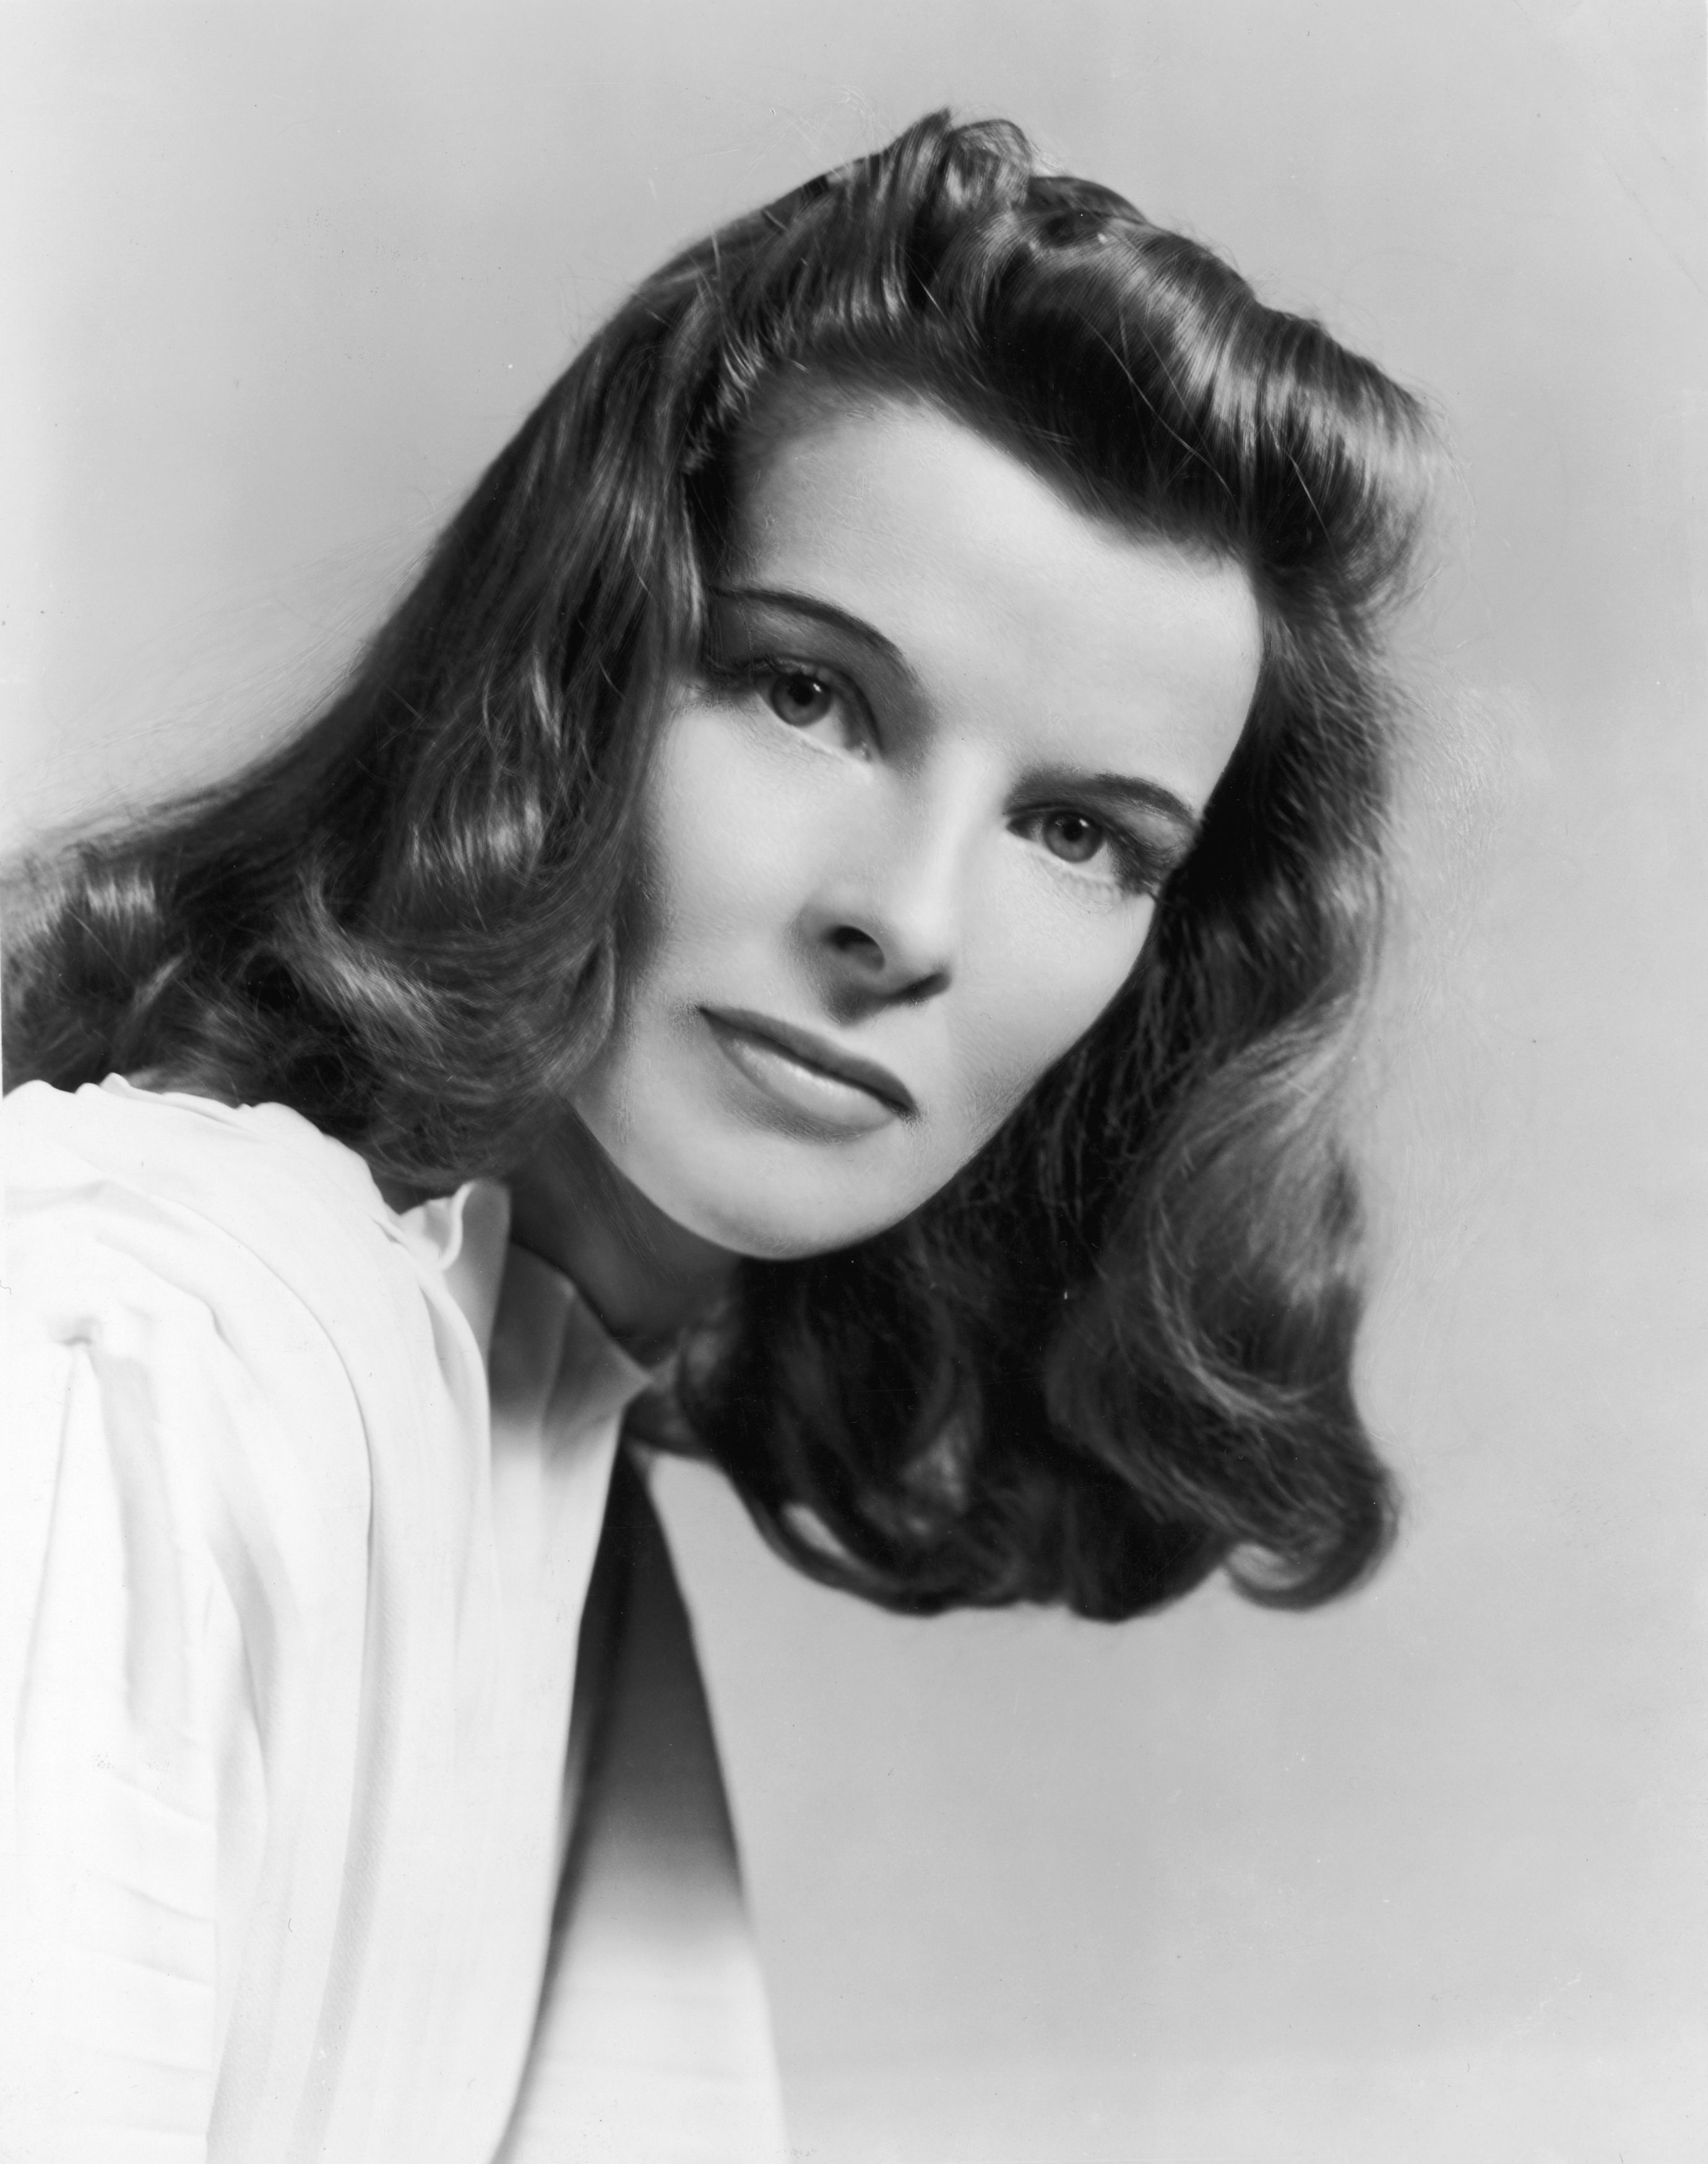 Katharine Hepburn Some people choose not to become parents for one simple reason: They don't want to. Katharine Hepburn opted out of  motherhood because she wanted to focus on herself and her well-being.